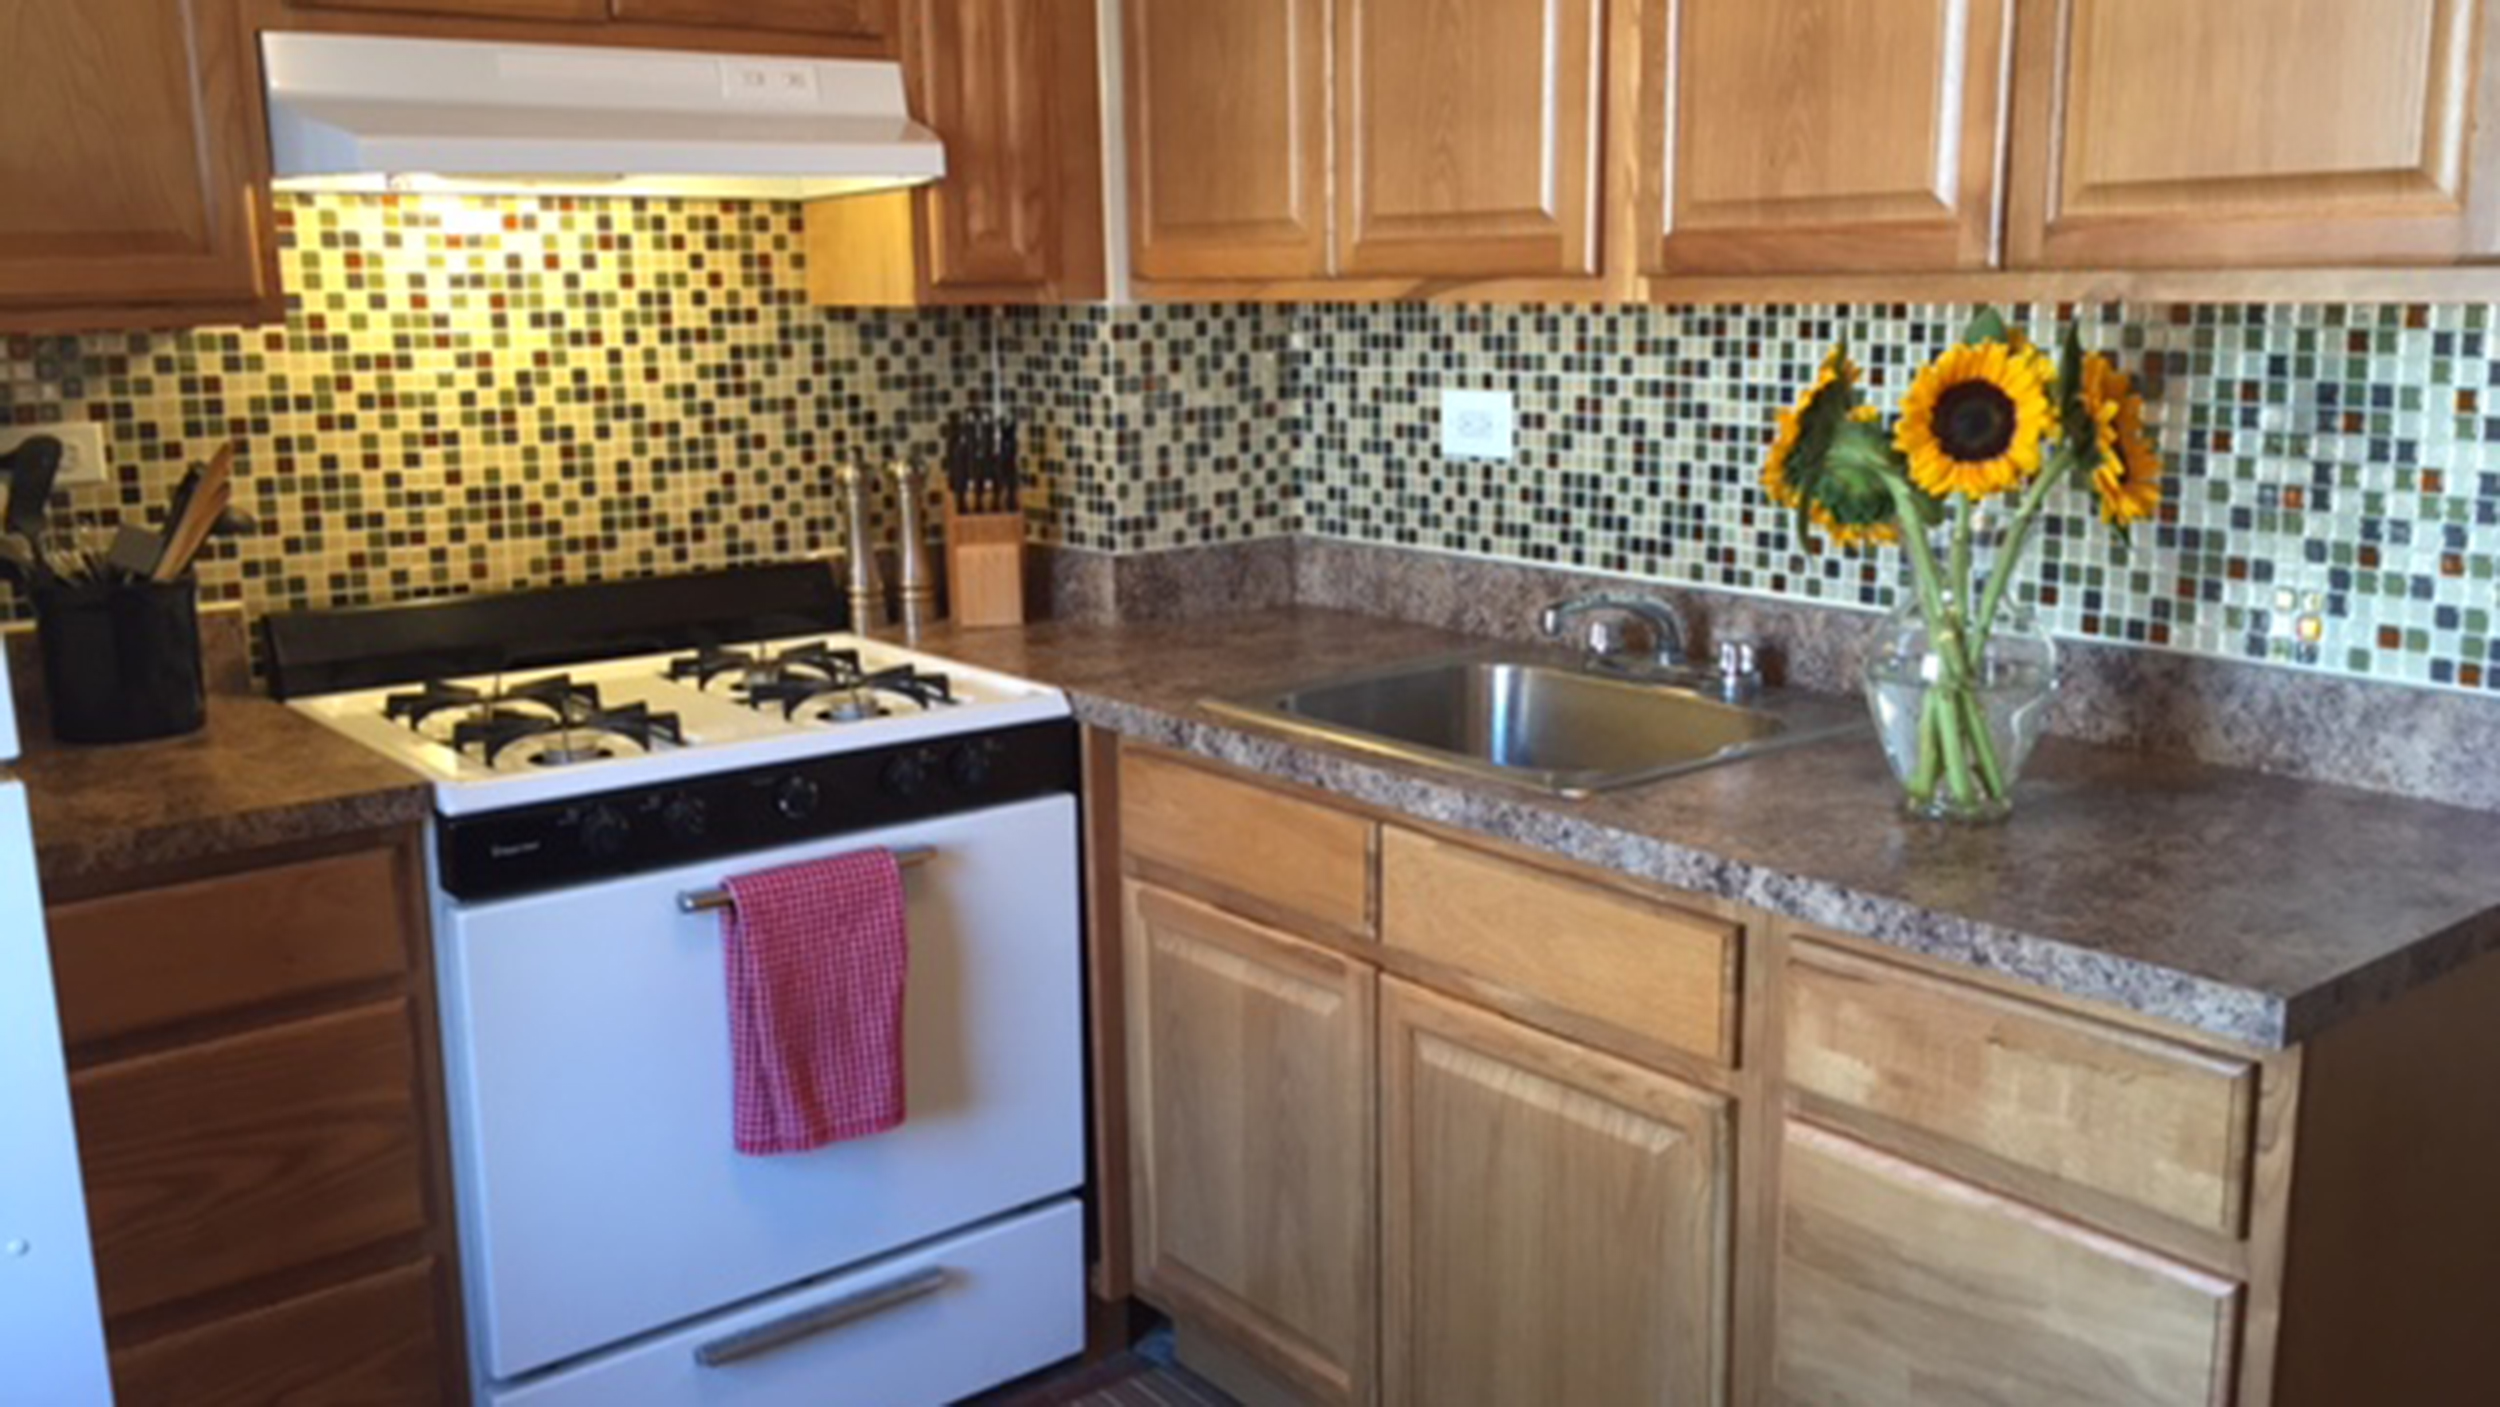 Today tests temporary backsplash tiles from smart tiles today dailygadgetfo Choice Image